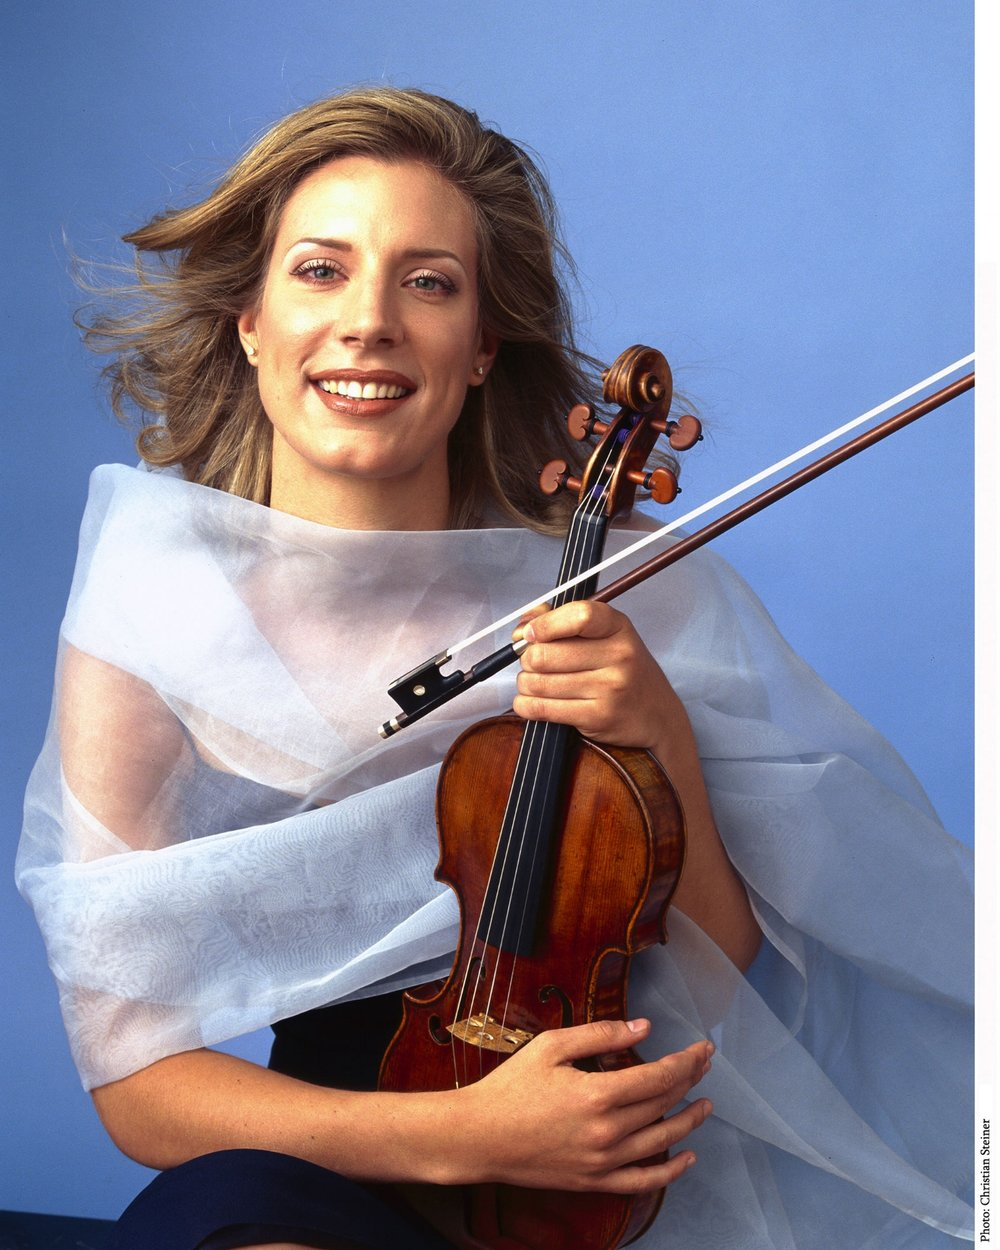 The Return of the Red Violin  - International Violinist Elizabeth Pitcairn